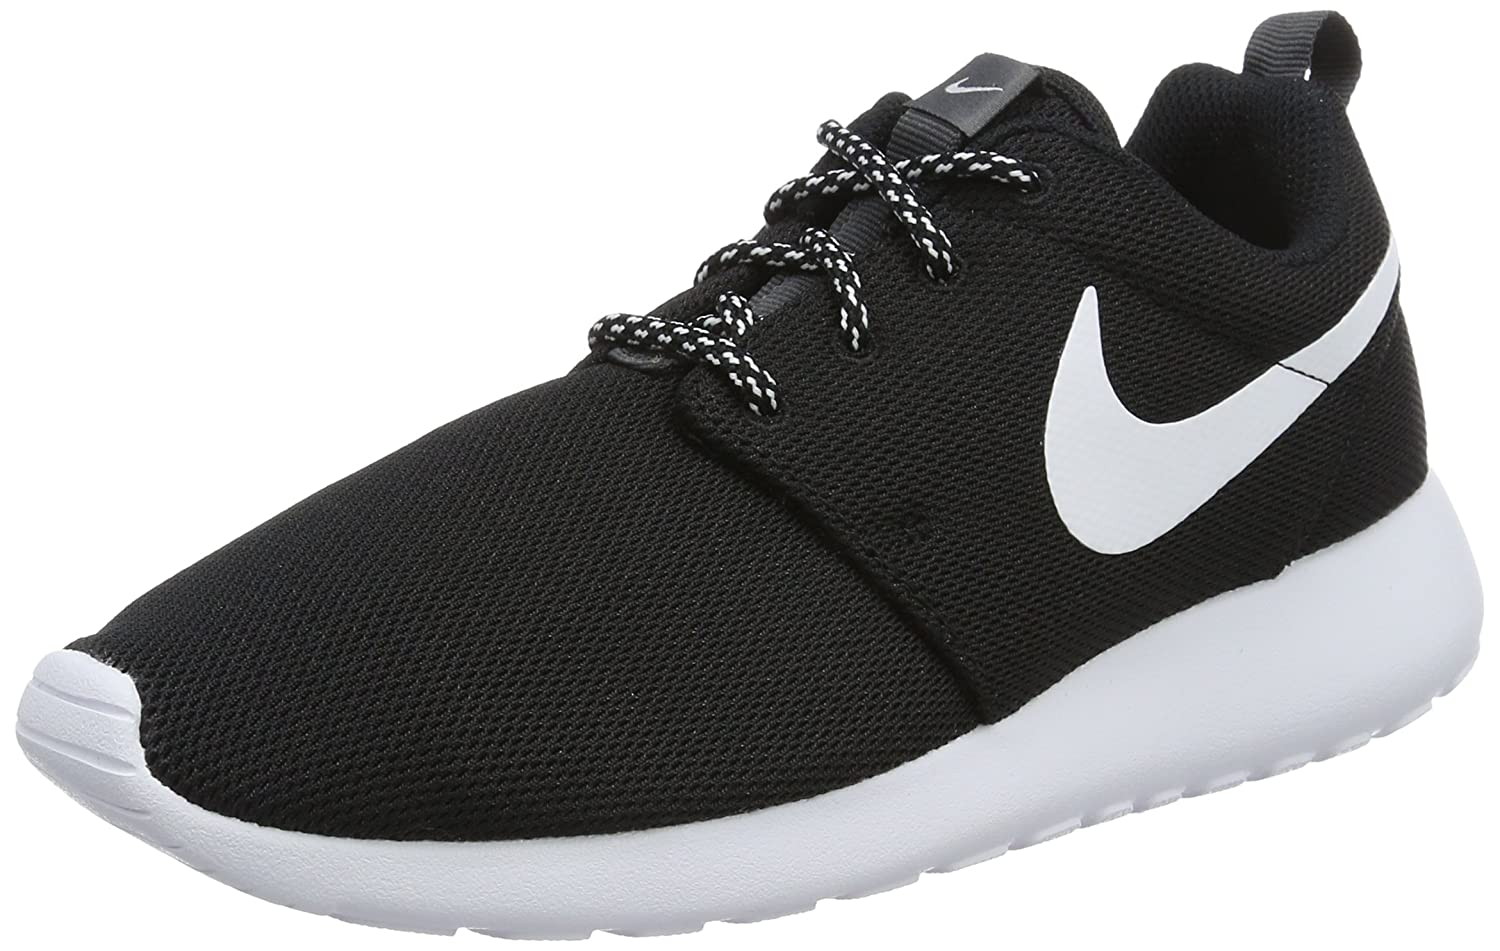 0d38c6d41e52 Nike Women s Roshe One Trainers